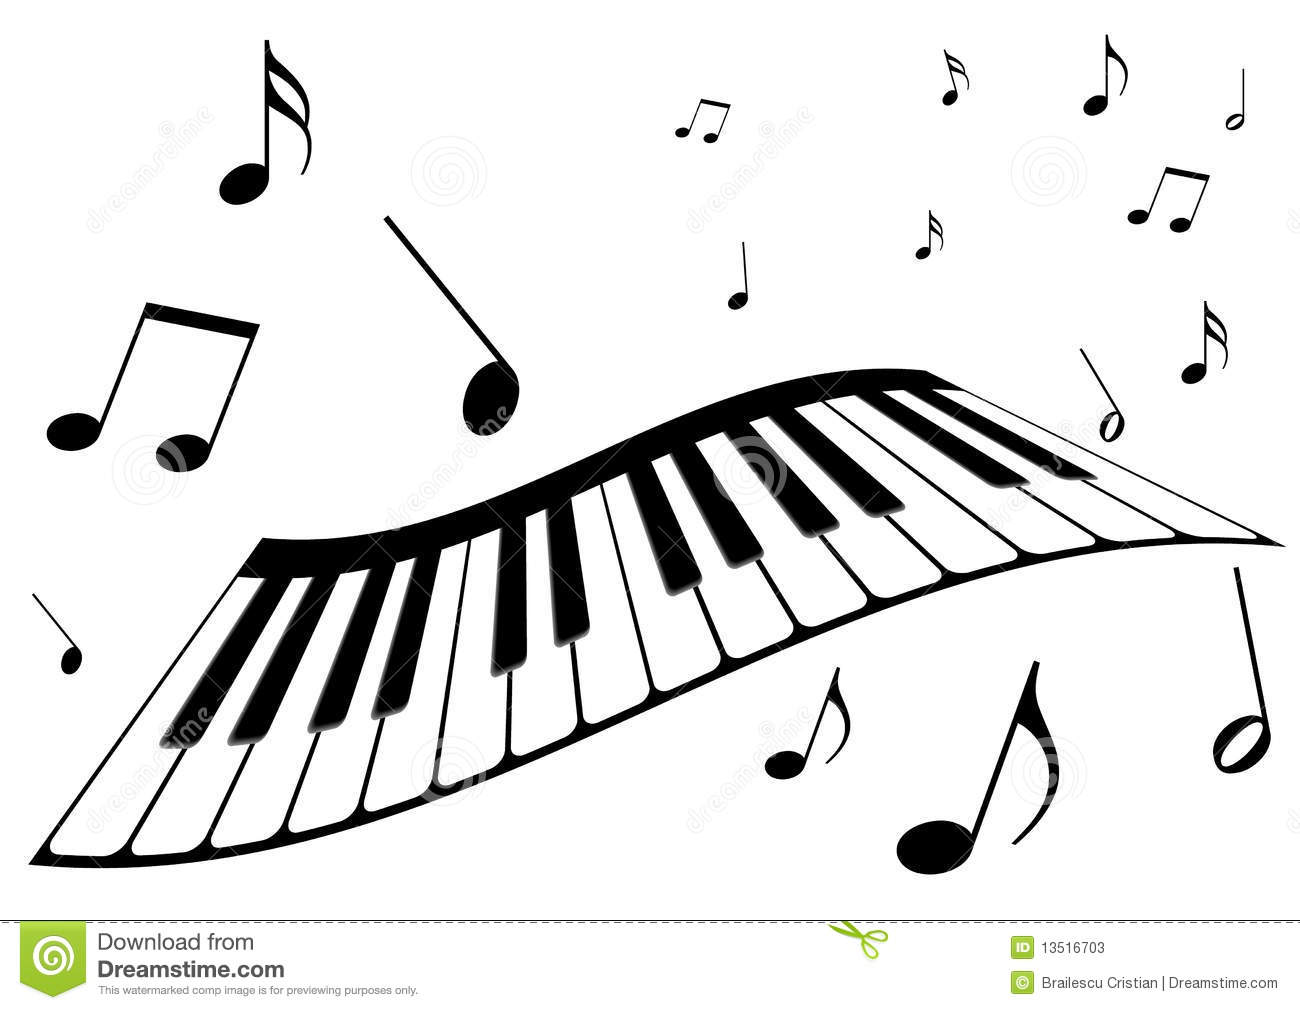 1300x1010 Piano Music Clipart Black And White